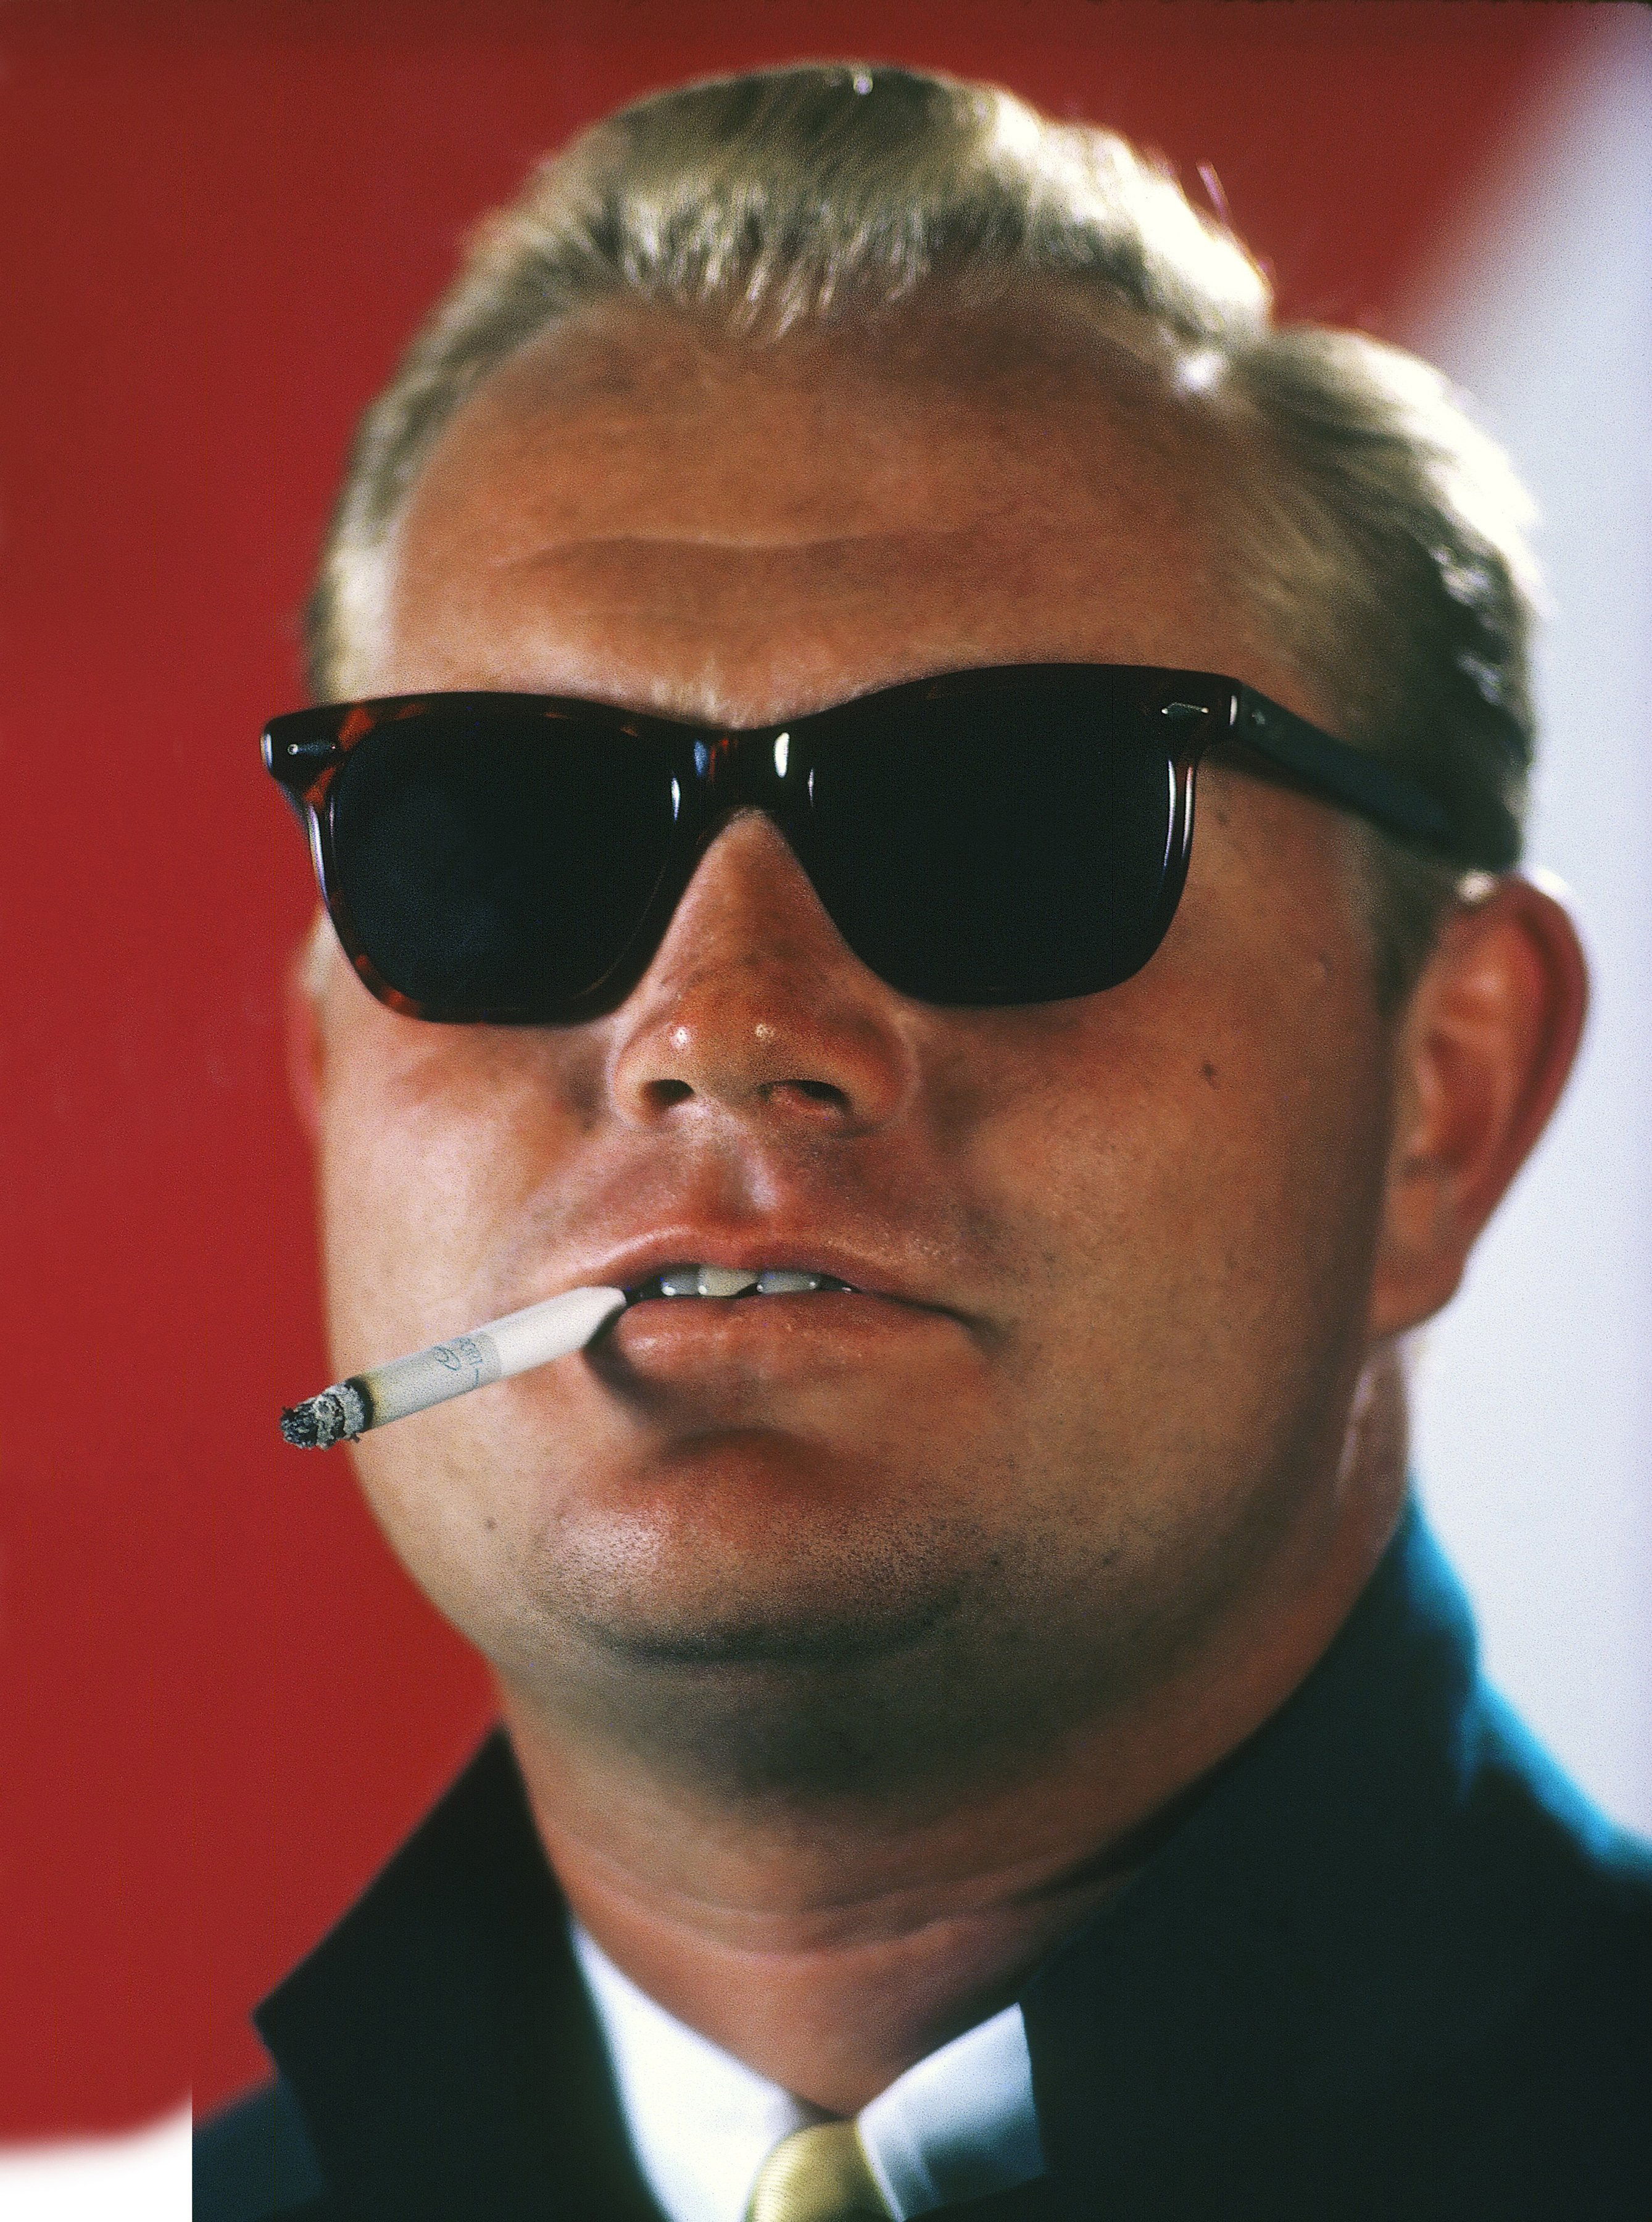 Jack Nicklaus channels Jack Nicholson in this 1967 photo.